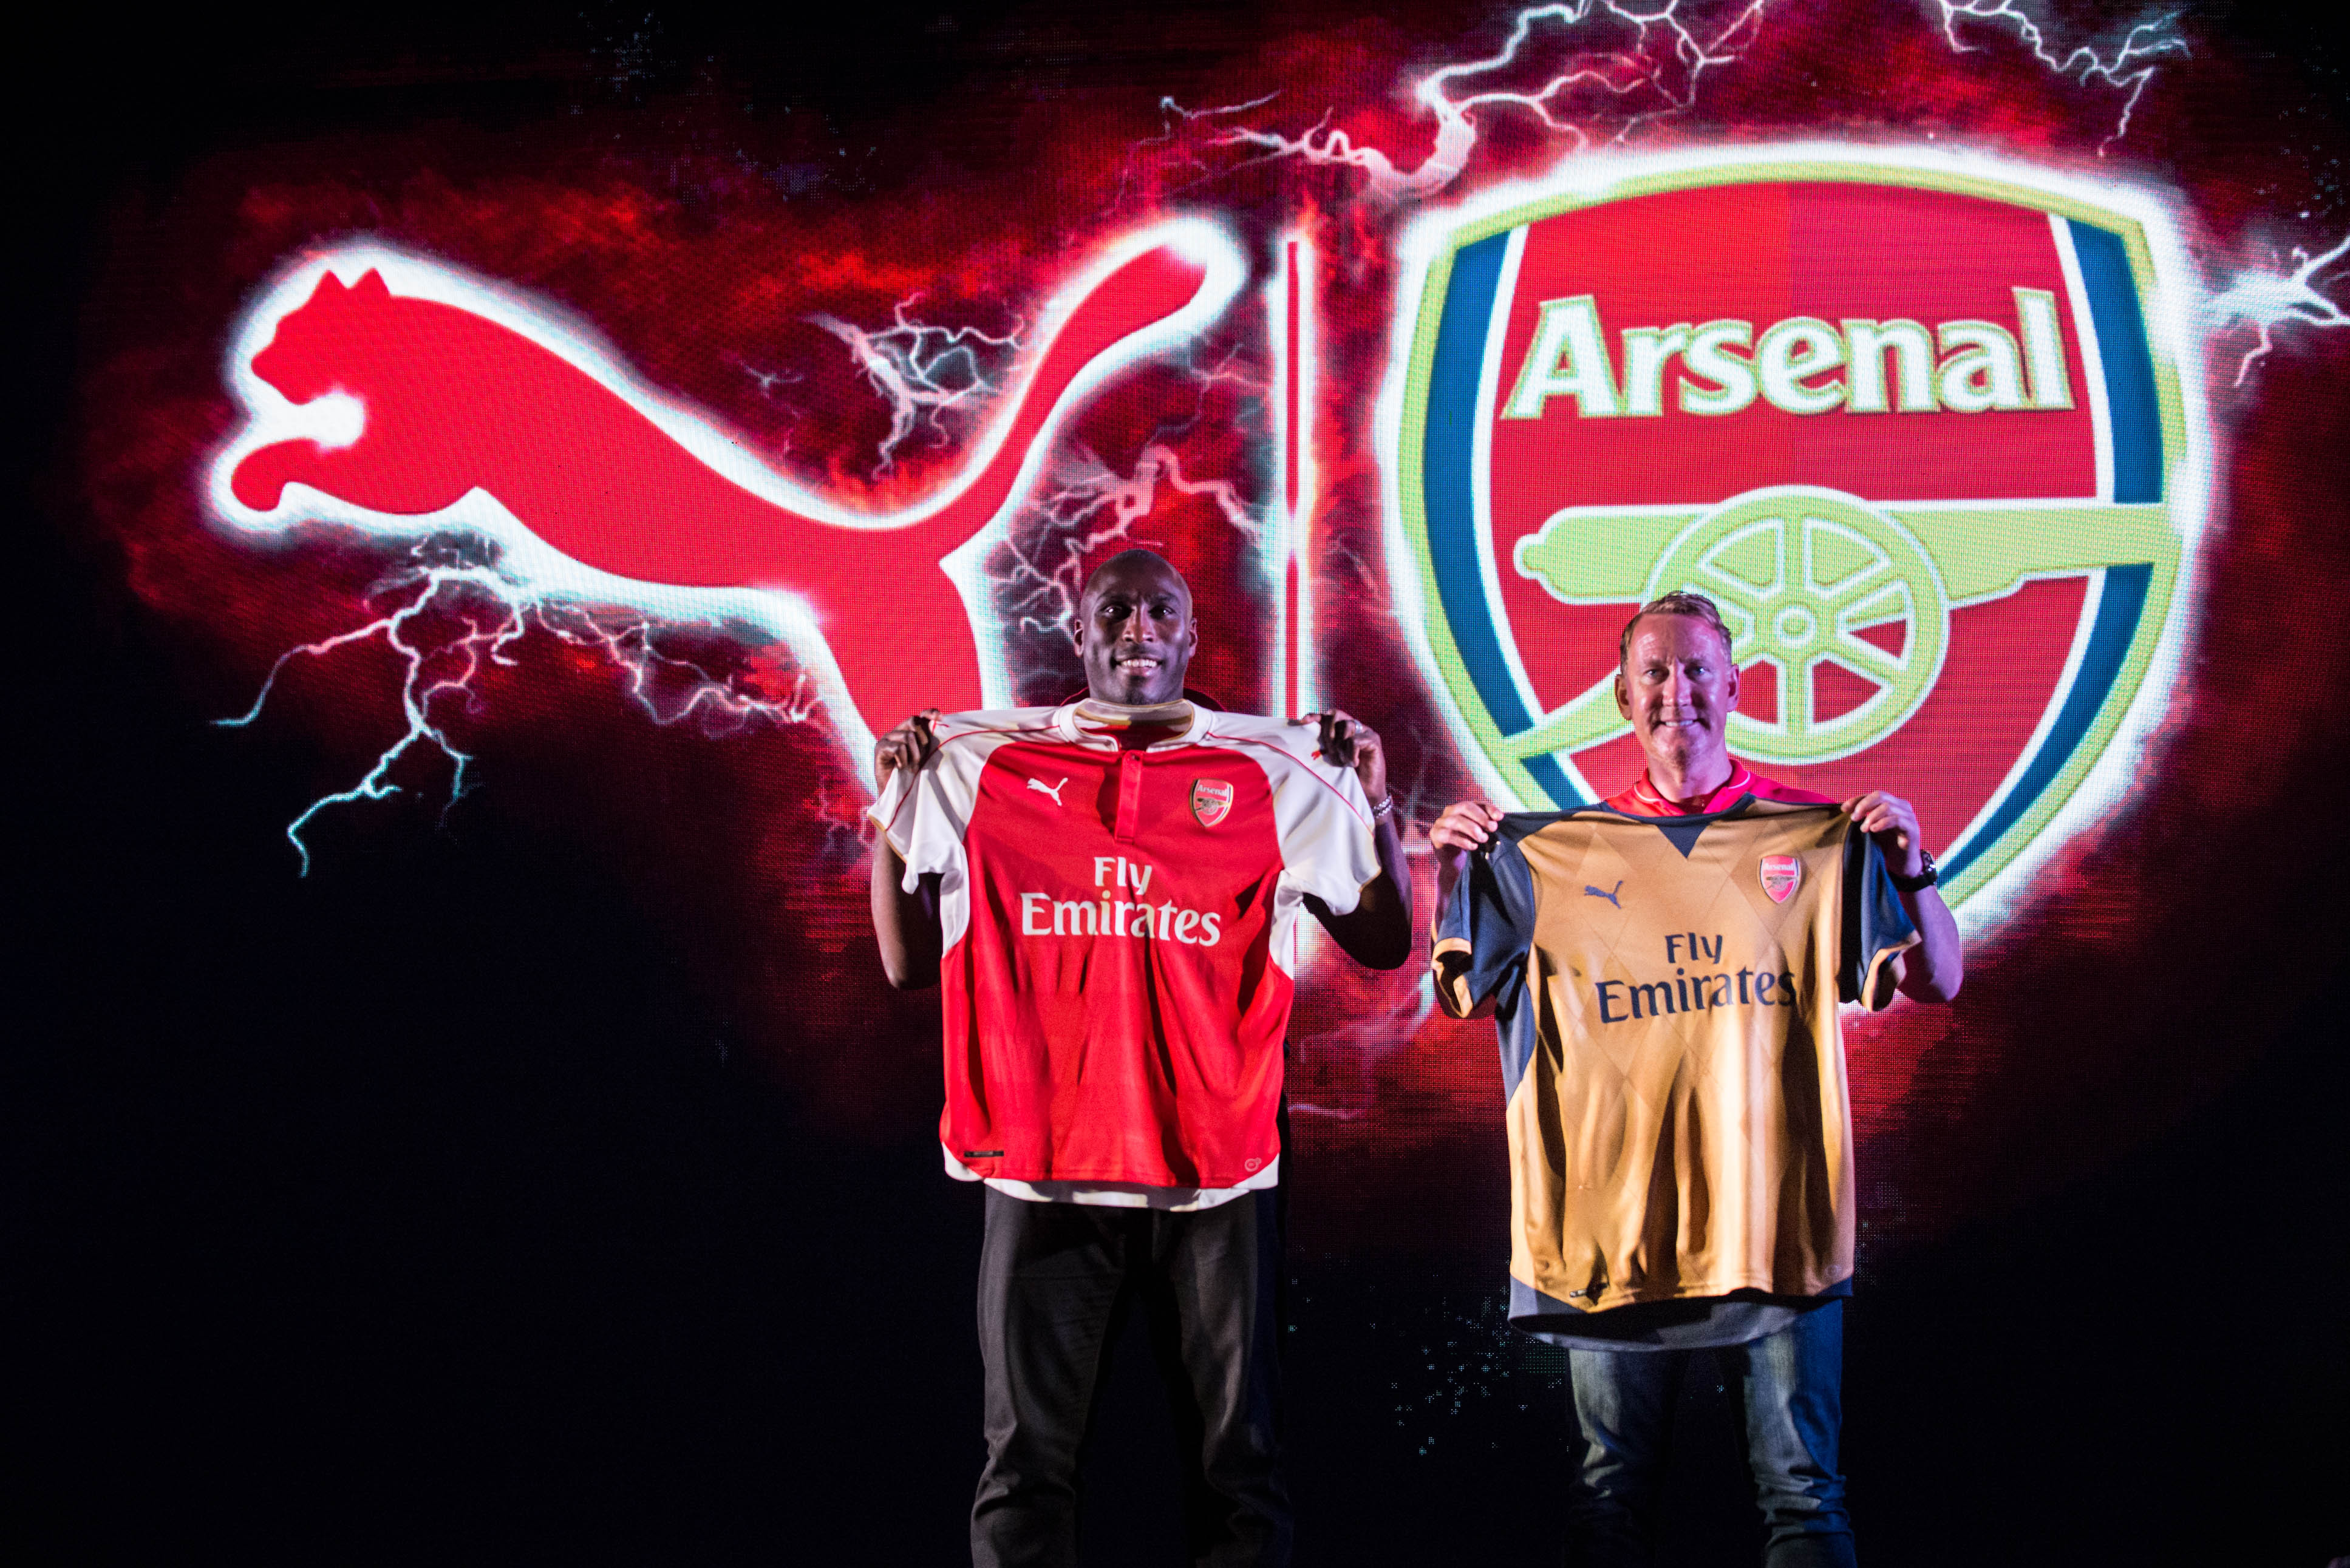 e4f4bb16f ... Arsenal legends Ray Parlour and Sol Campbell unveil the new PUMA Arsenal  kits in India for